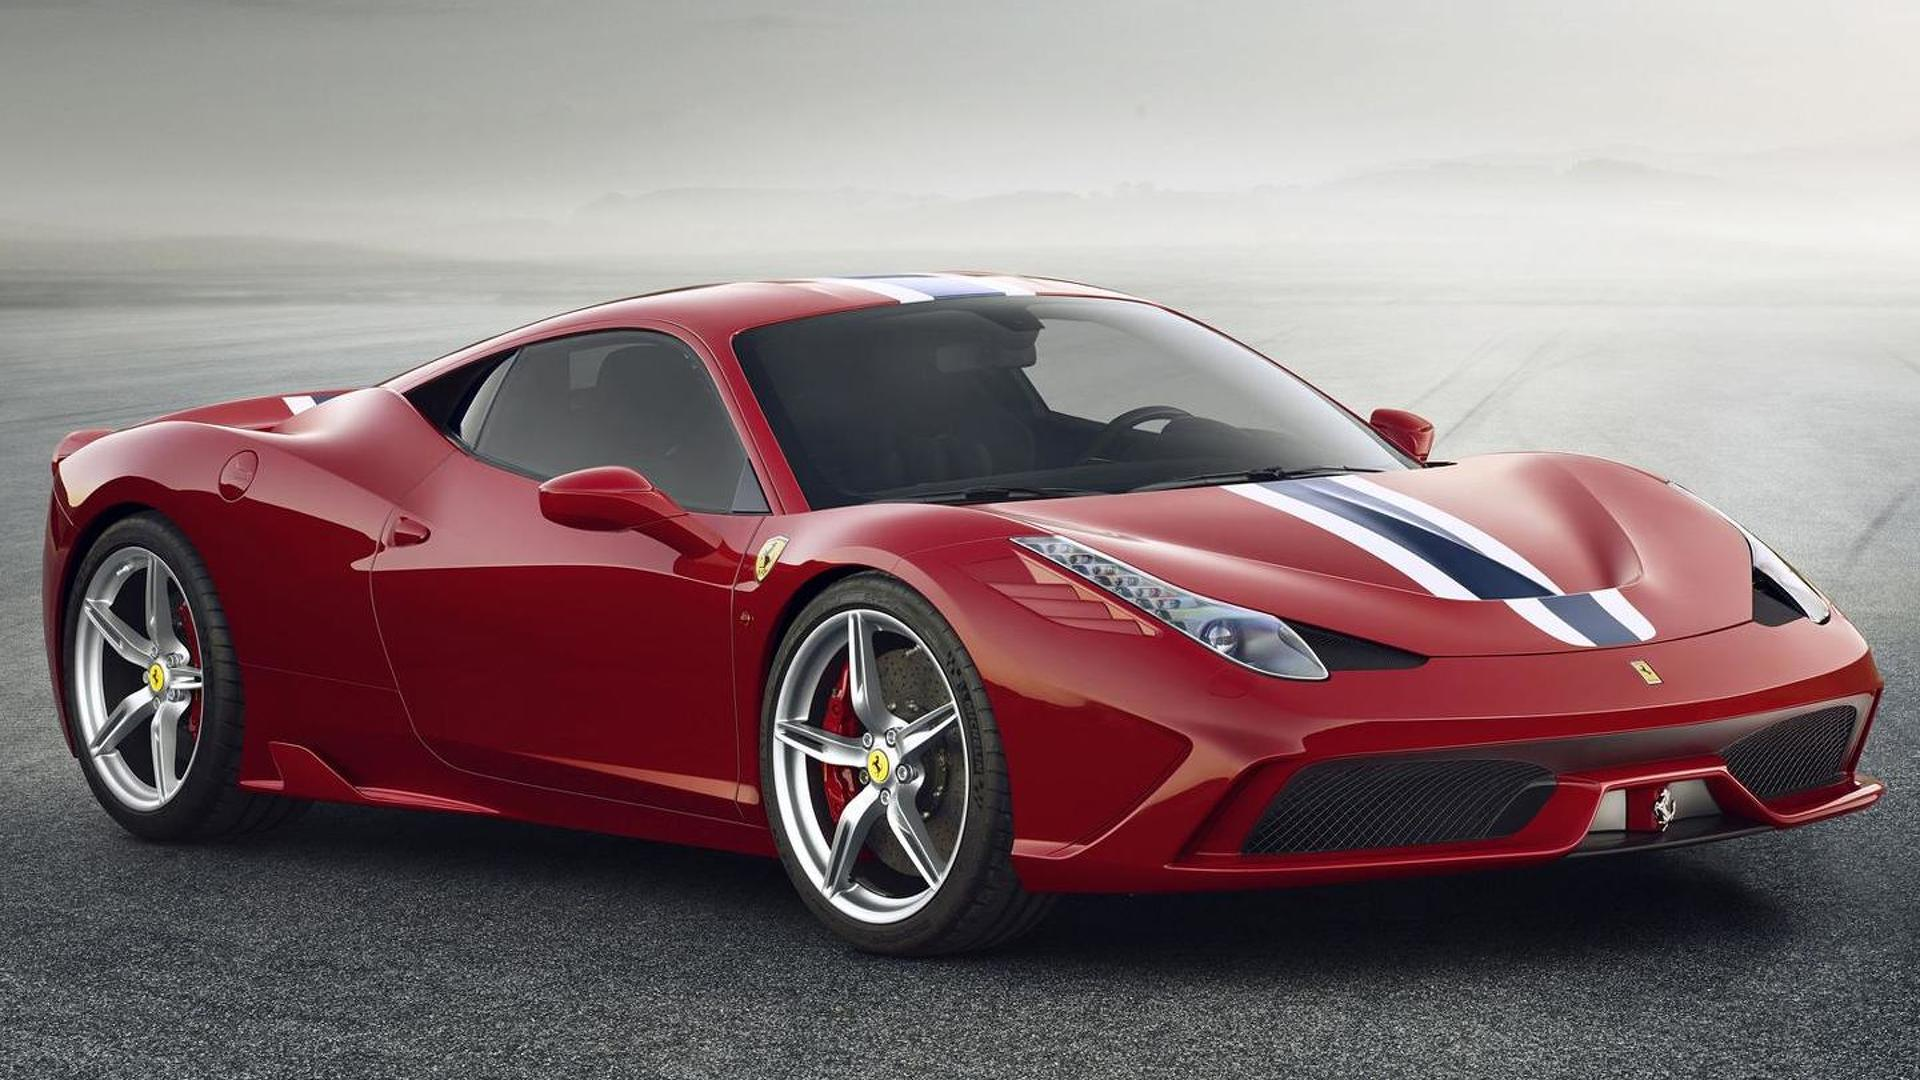 Ferrari 458 Speciale revealed [video added]